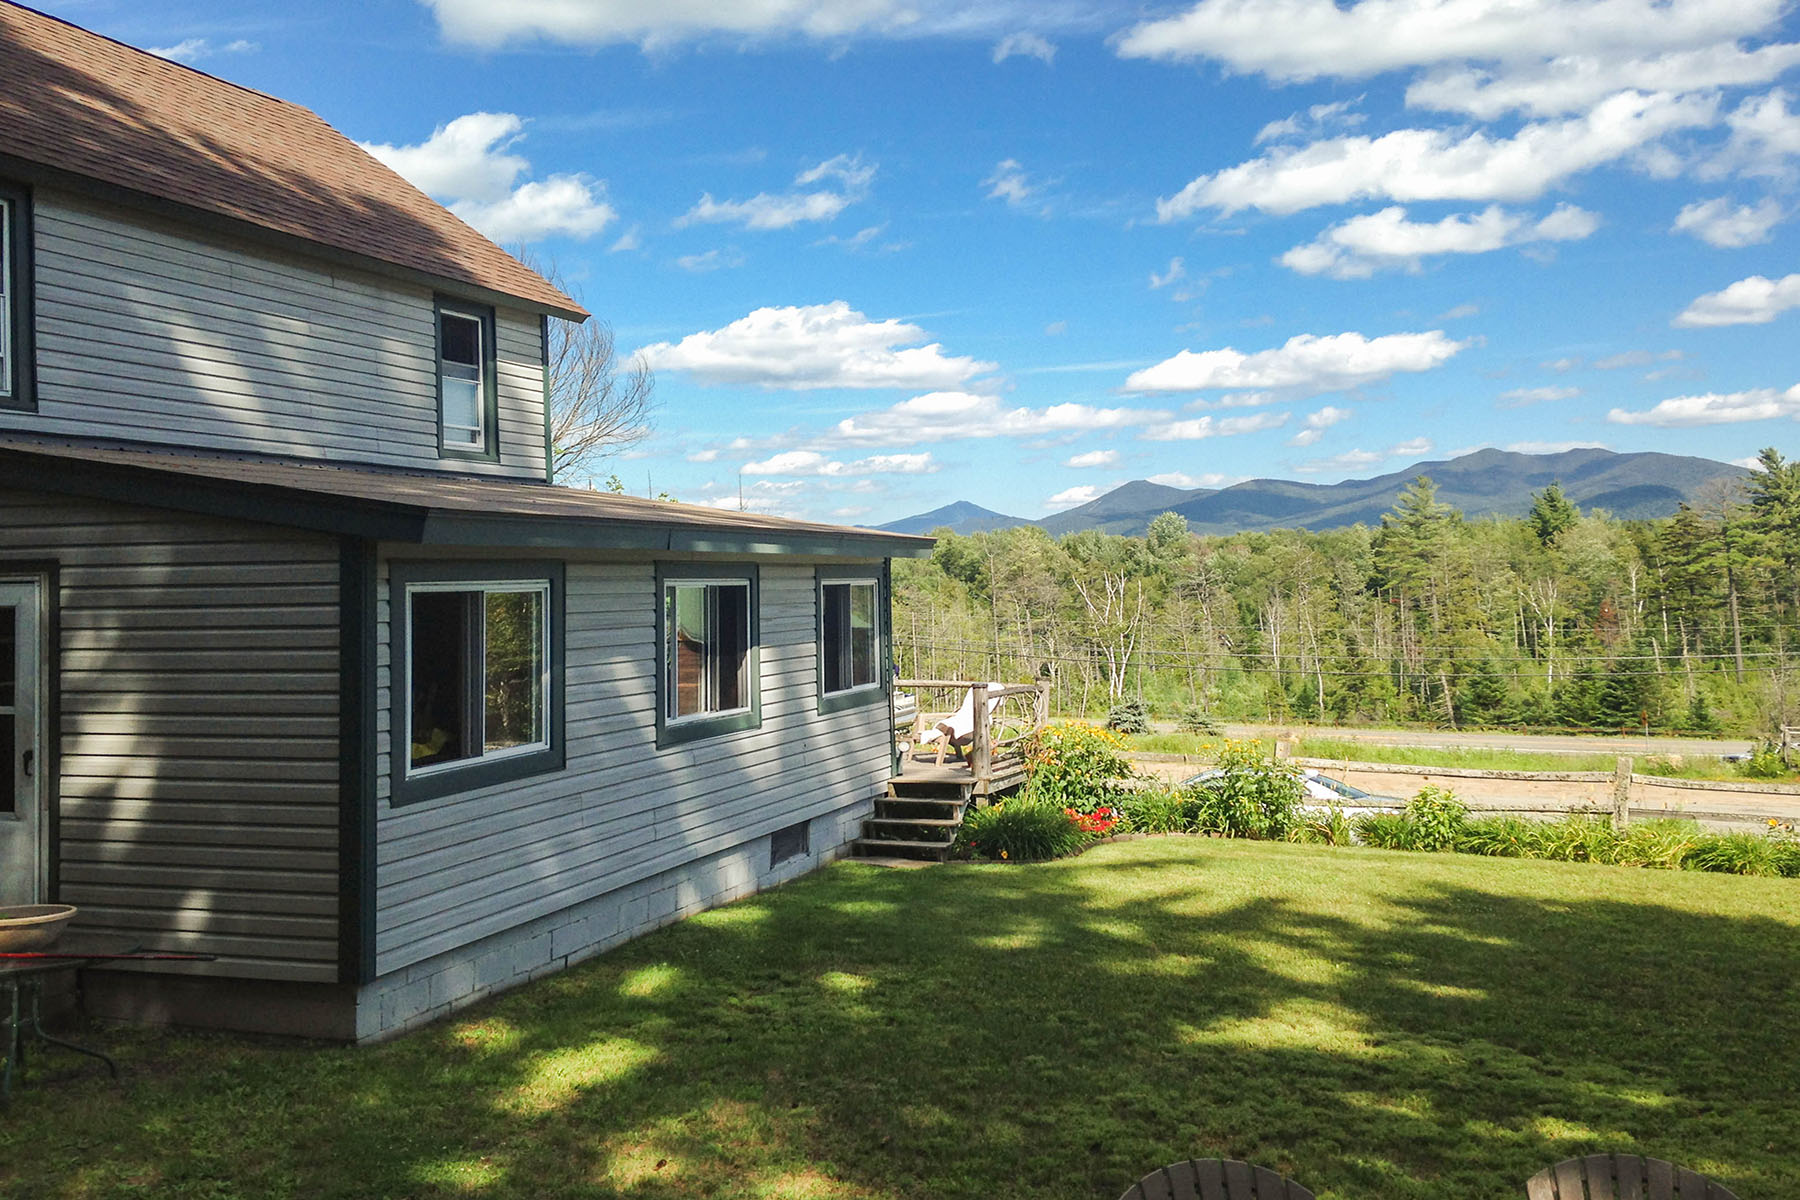 Additional photo for property listing at Historic Mountain View Home 635  County Route 47 Saranac Lake, Nueva York 12983 Estados Unidos